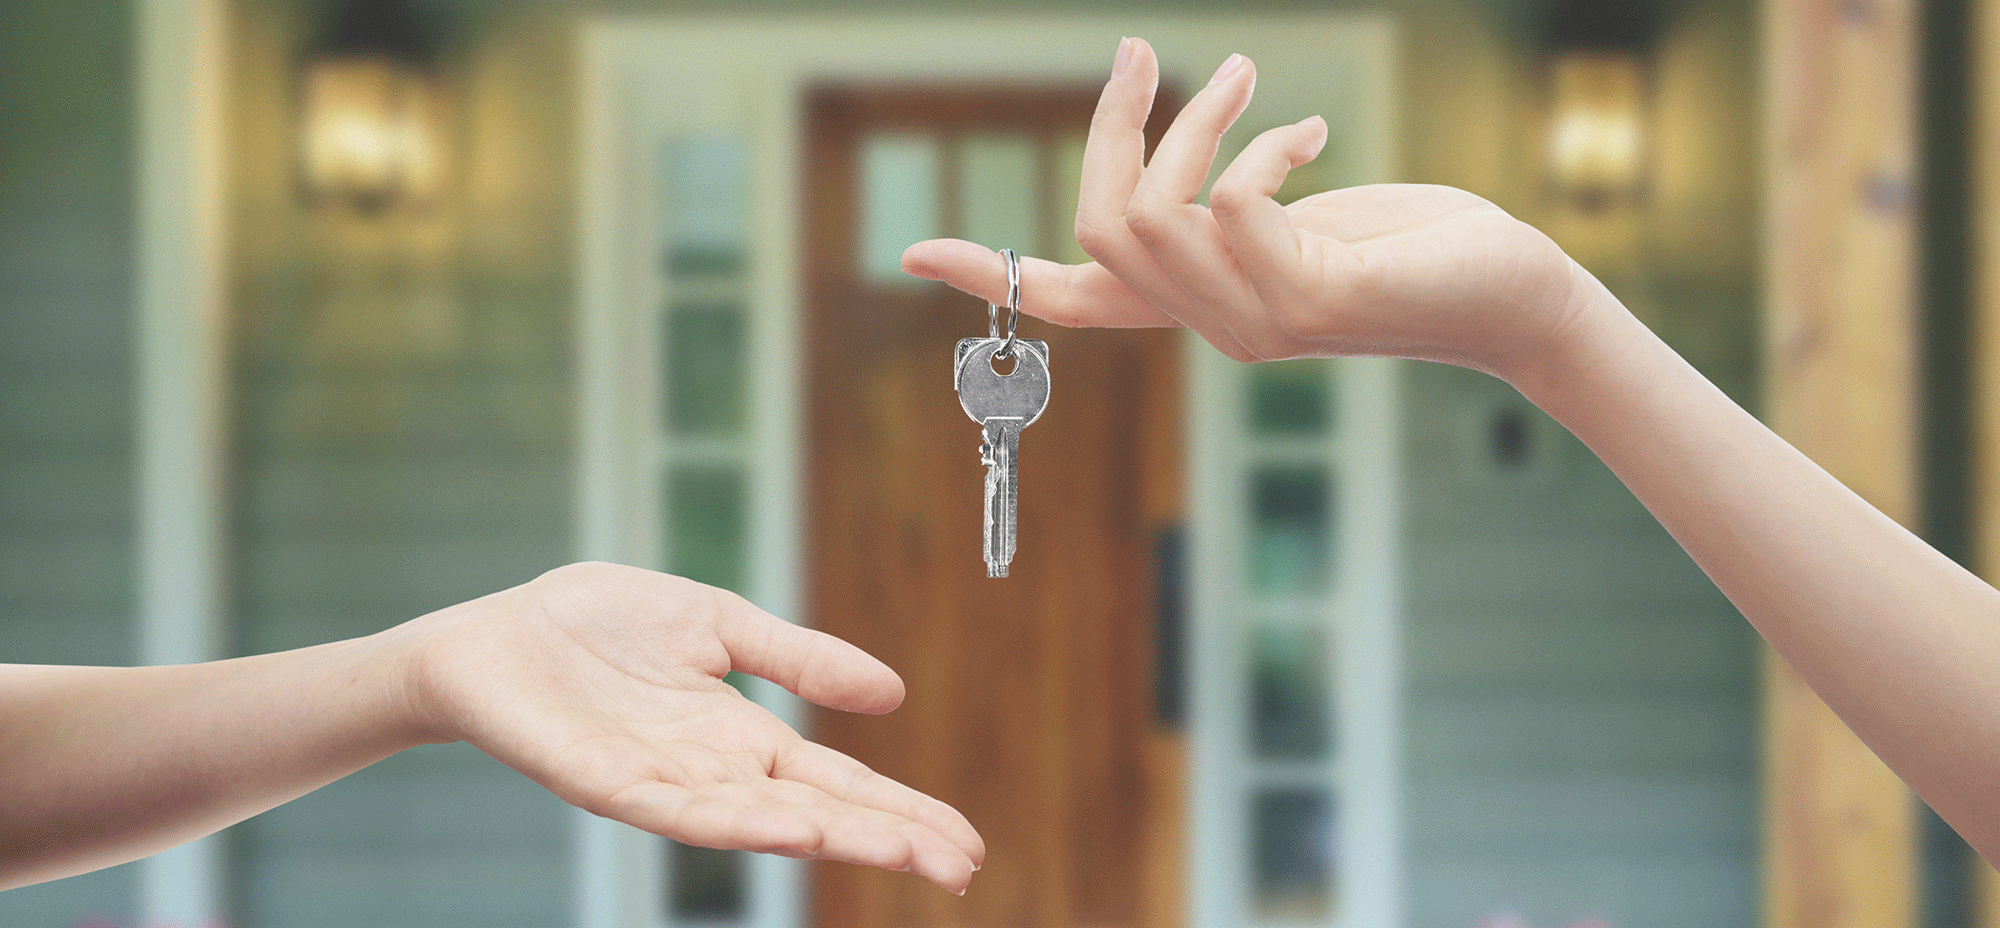 Two hands exchanging keys to a new home.